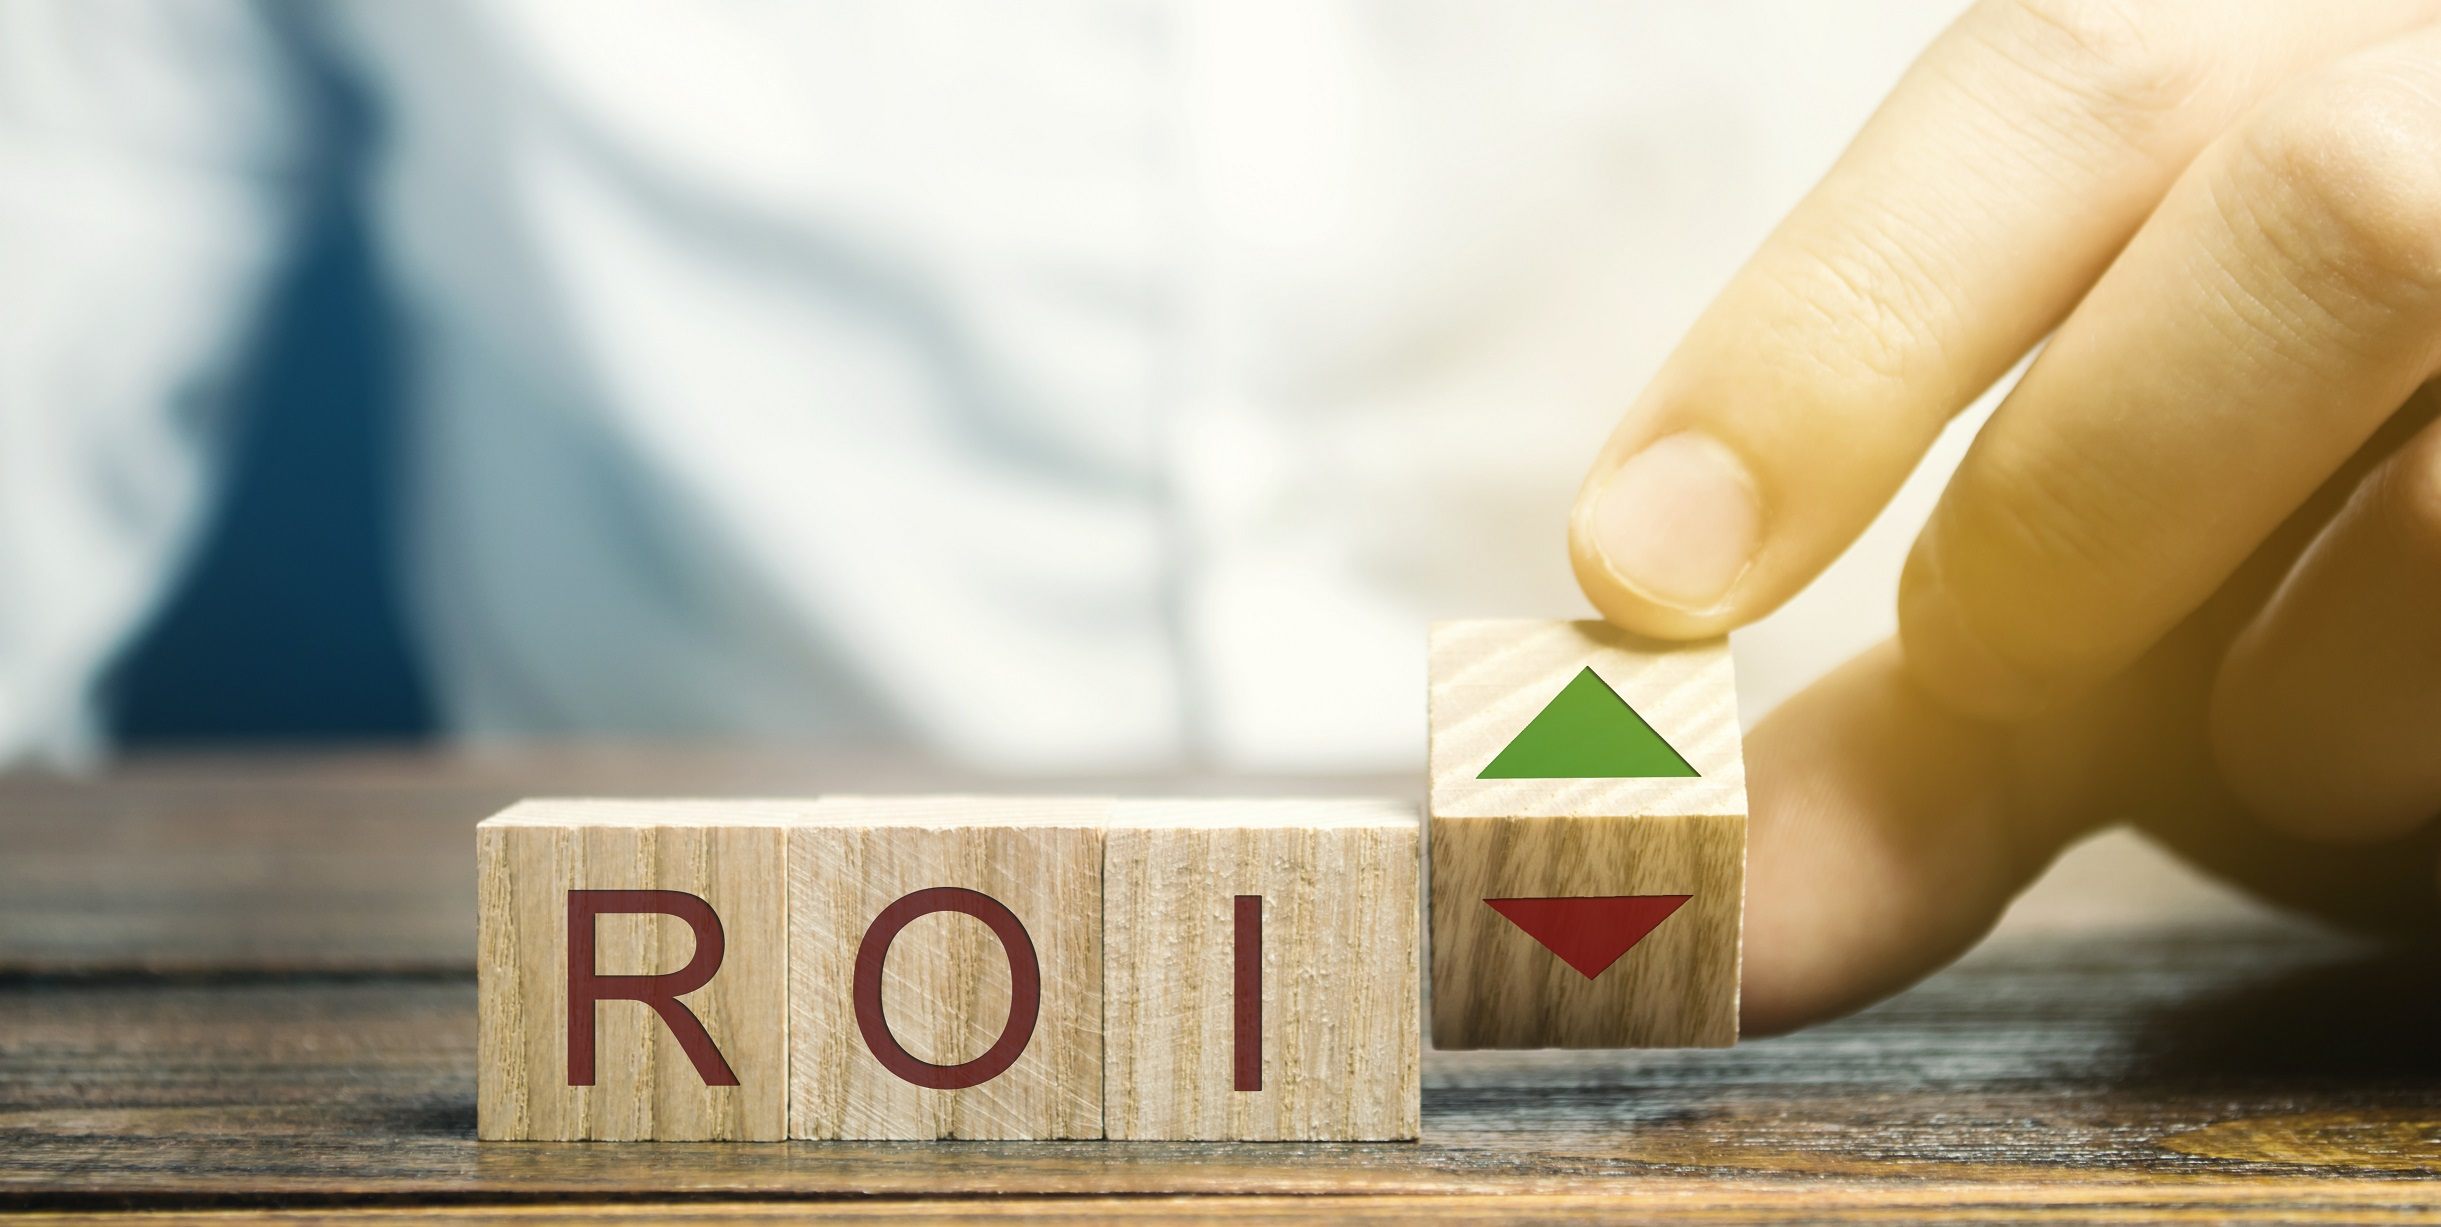 ROI on wooden blocks